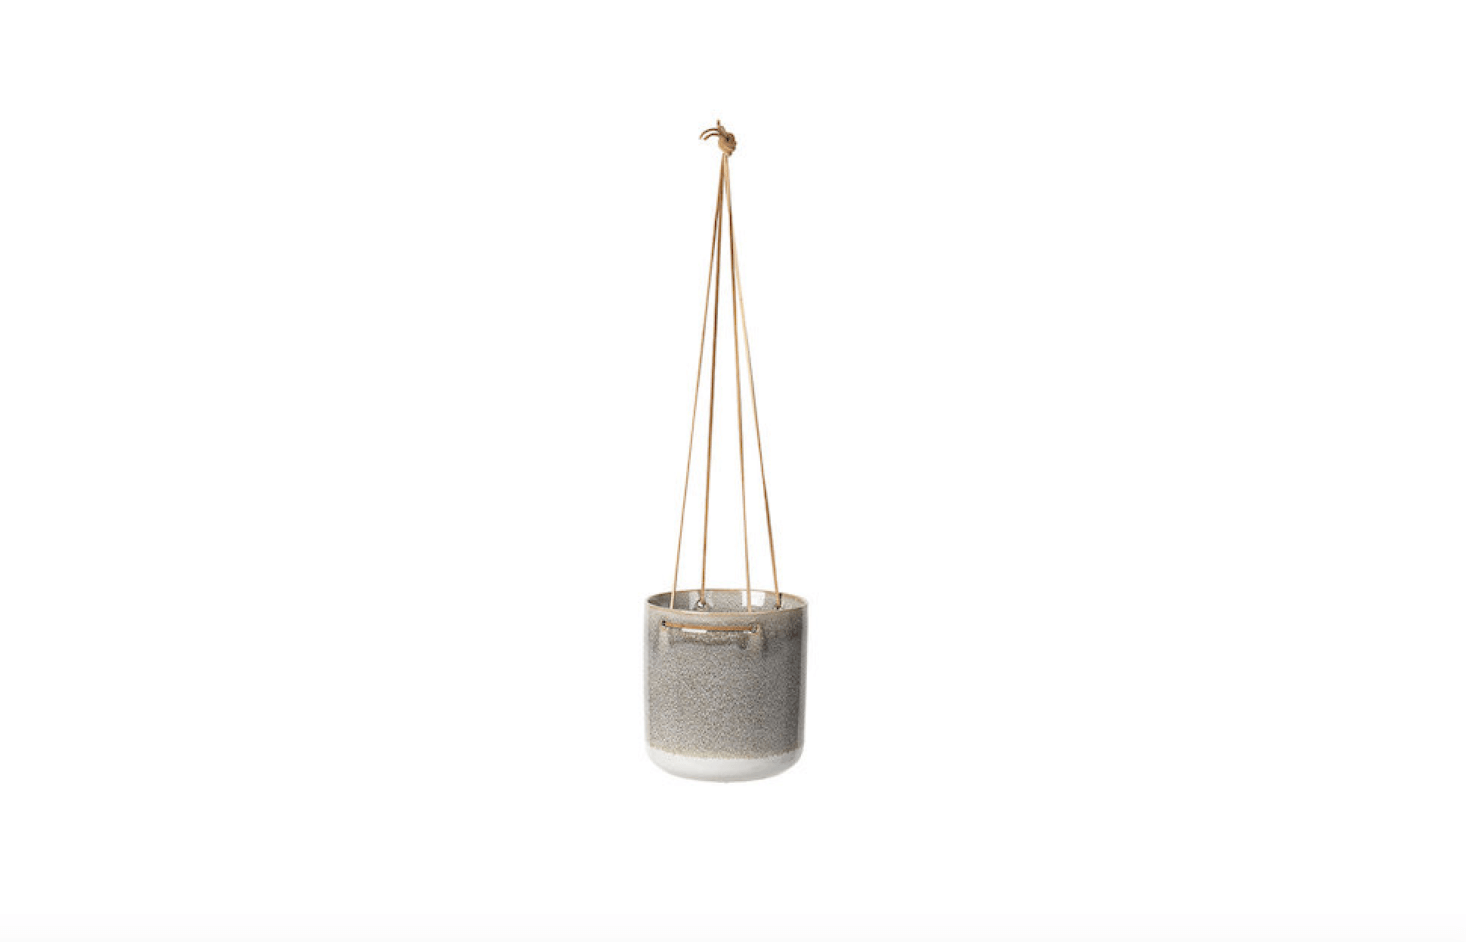 A textured ceramic Almas Hanging Flowerpot has a leather string (and is suitable for outdoor use in summer months). It is $48 from Amara.